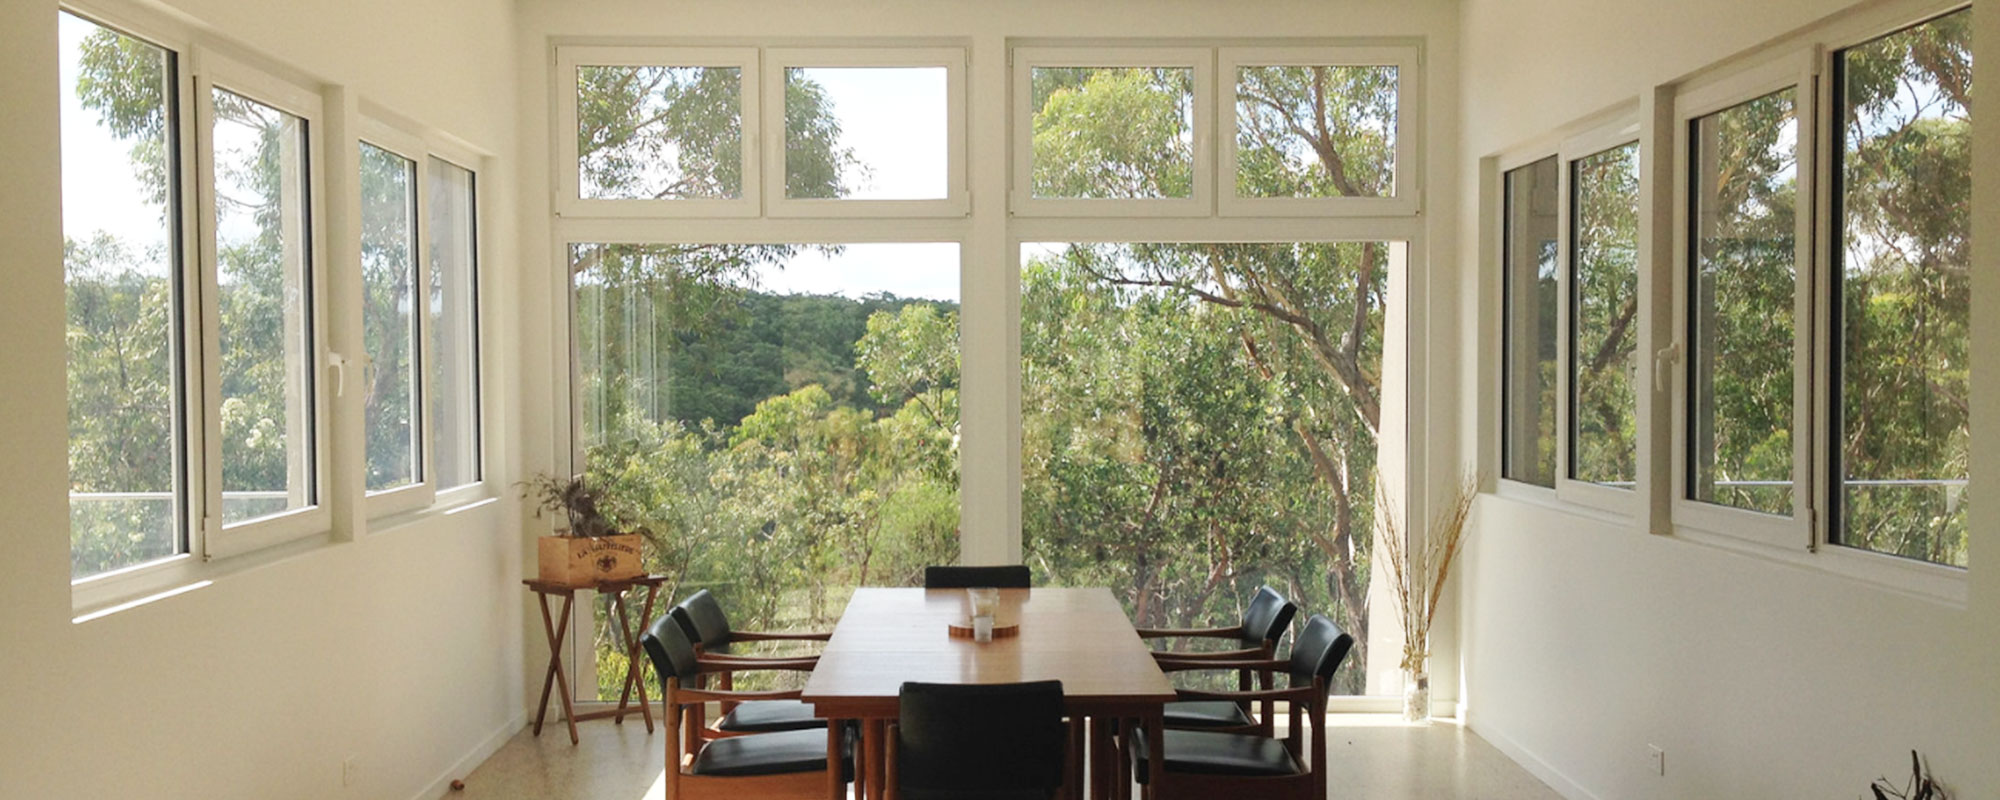 Plustec - Providing quality custom design and manufacturing of tilt and turn double-glazed windows for residential, commercial and industrial clients across Australia.